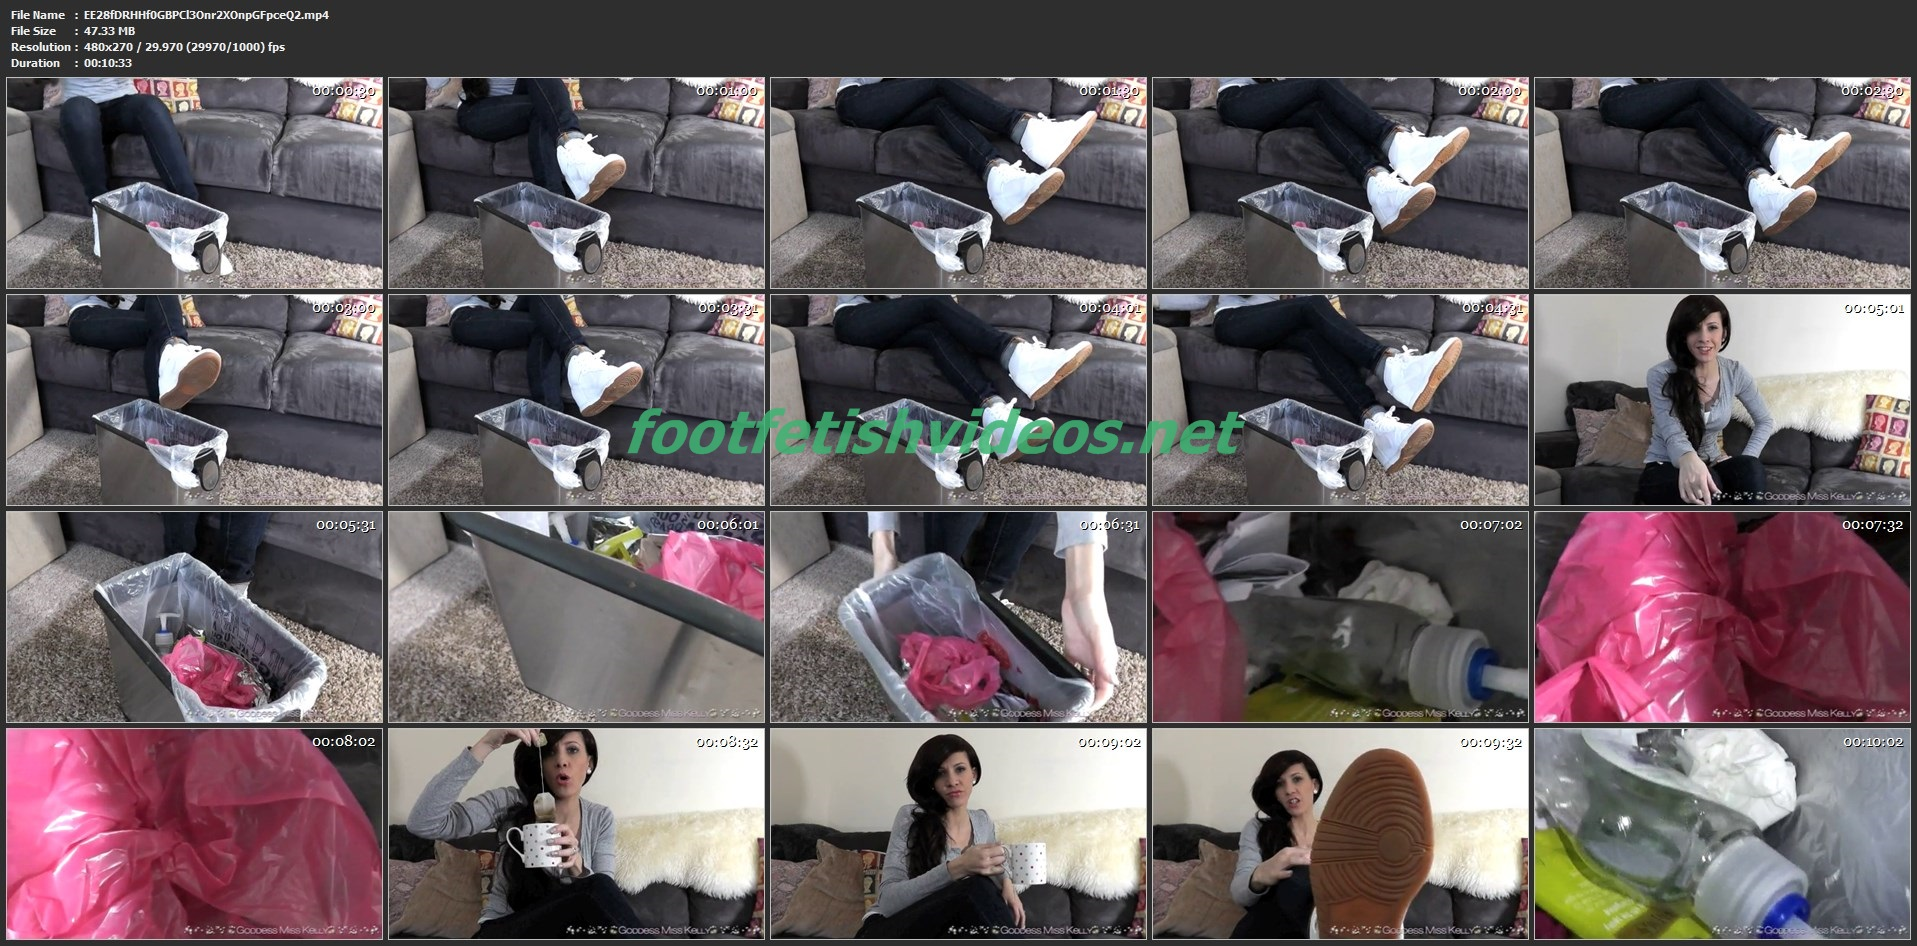 goddessmskelly-EE28f-DRHHf0-GBPCl3-Onr2-XOnp-GFpce-Q2-mp4